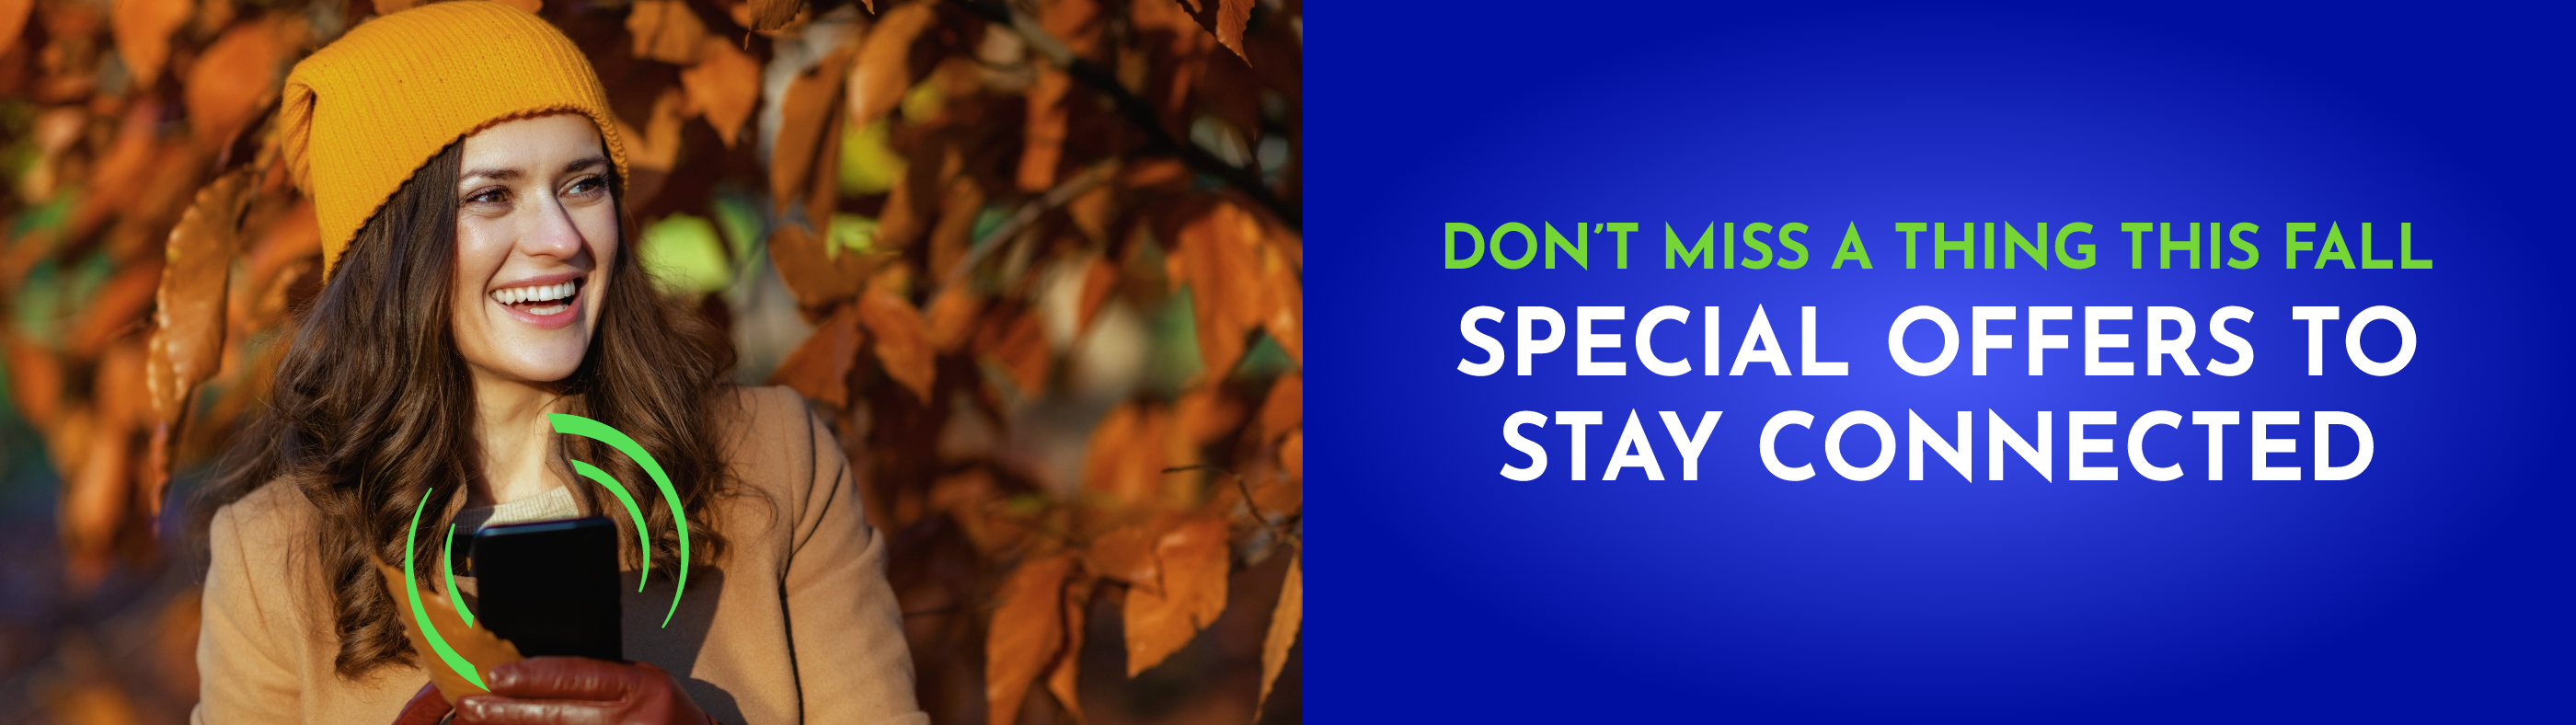 DON'T MISS A THING THIS FALL - SPECIAL OFFERS TO STAY CONNECTED